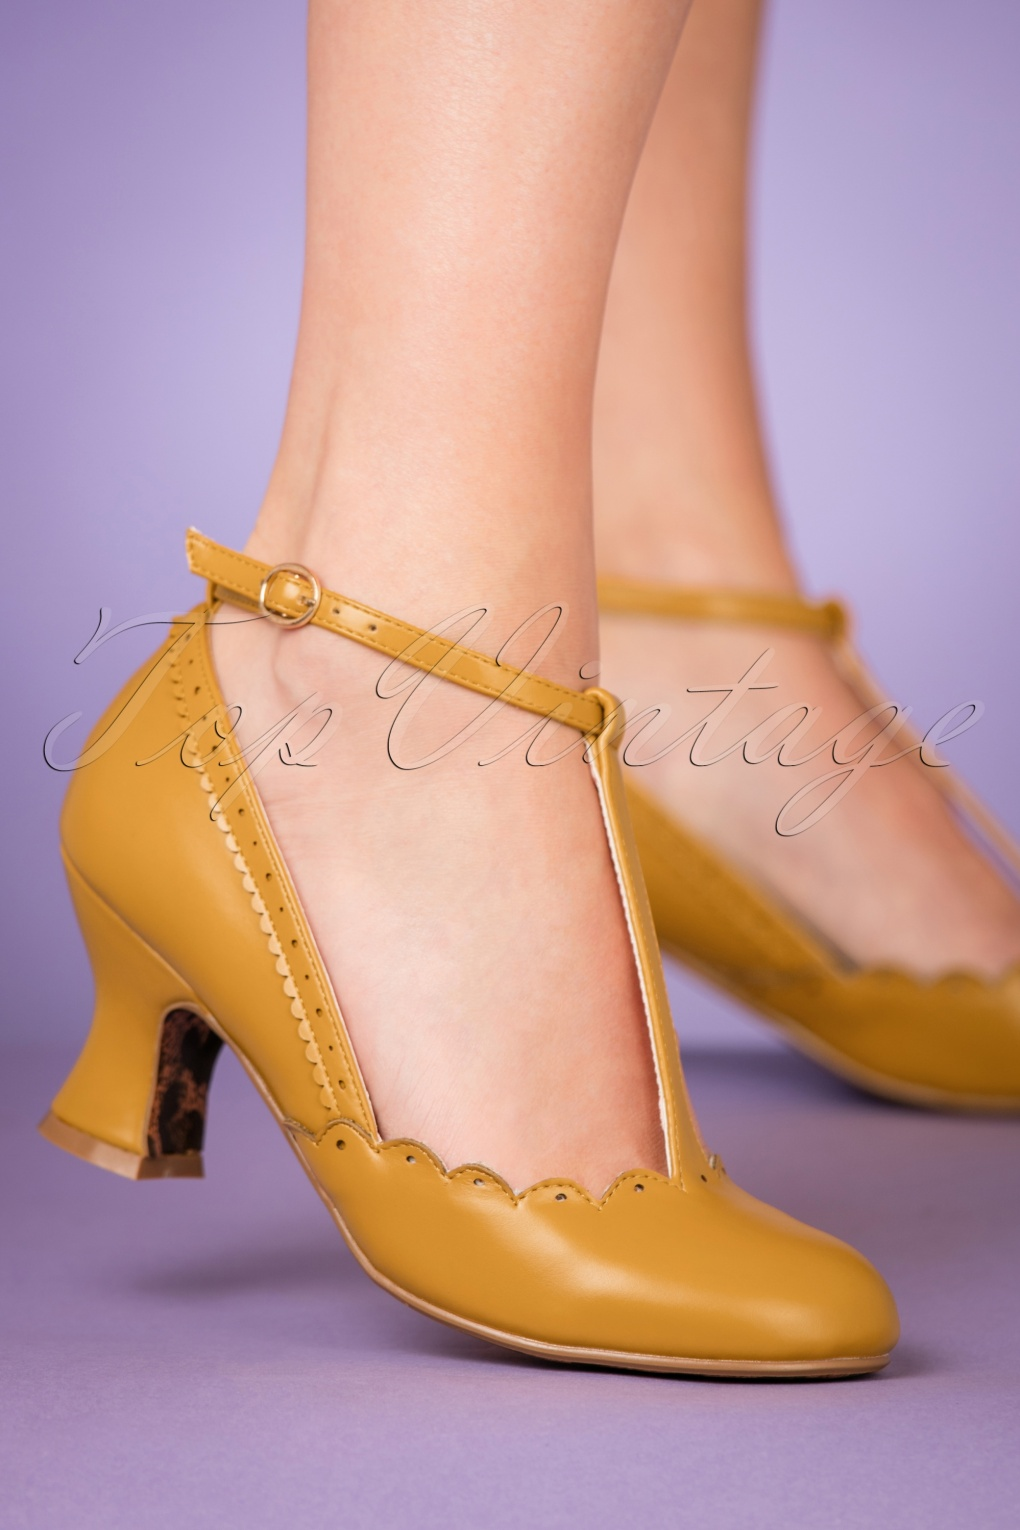 Pin Up Shoes- Heels, Pumps & Flats 50s Penny T-Strap Pumps in Mustard Yellow £59.50 AT vintagedancer.com